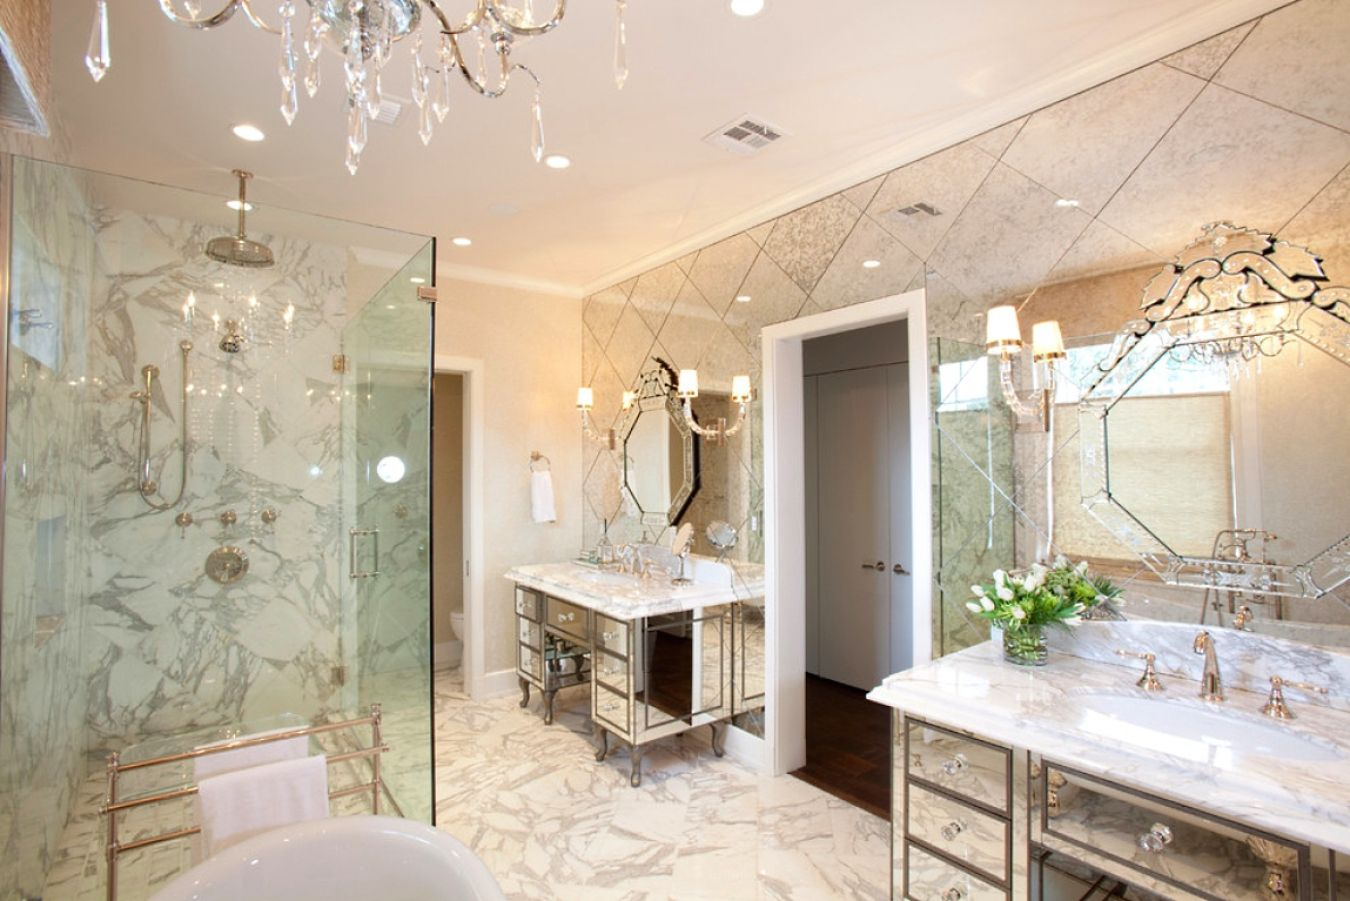 Mirror tiles ideas for modern interior design small design ideas mirror tiles ideas for modern interior design bathroom and boudoir in one amipublicfo Images